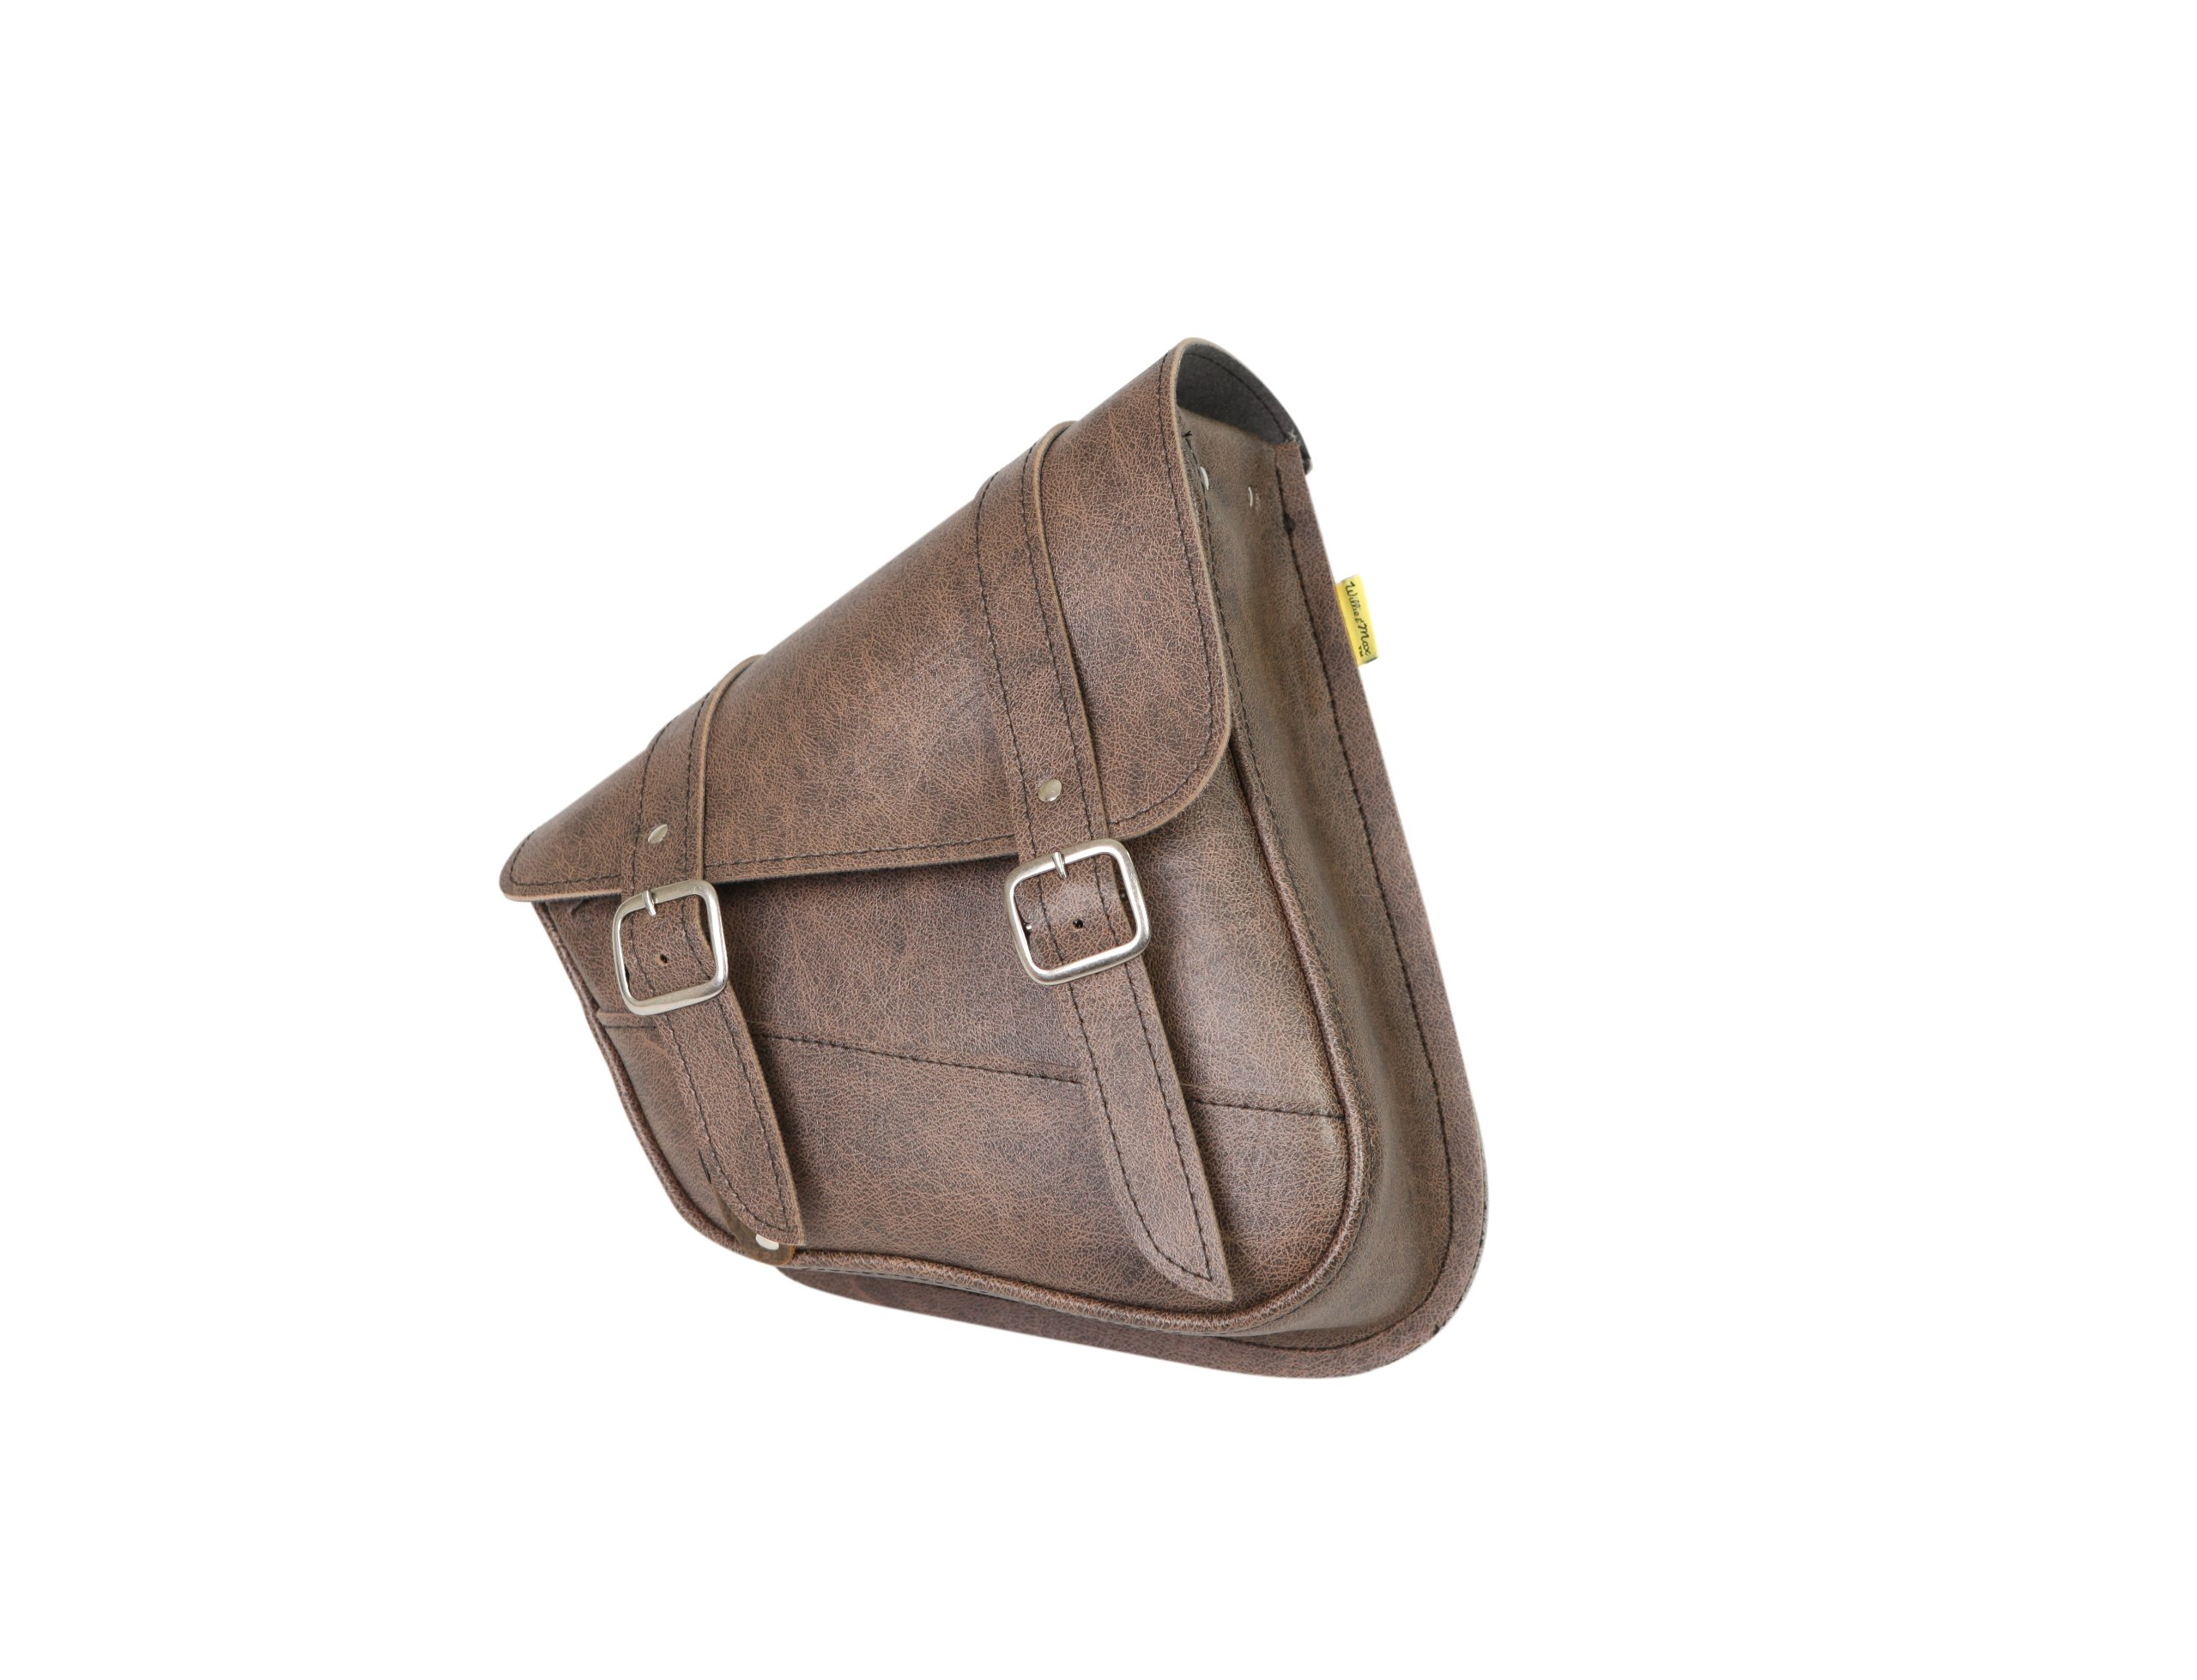 Willie & Max by Dowco 59779-00 Synthetic Leather Swingarm Bag: Brown, Fits Dual Shock Bikes/Sportster/Yamaha Bolt, 9 Liter Capacity